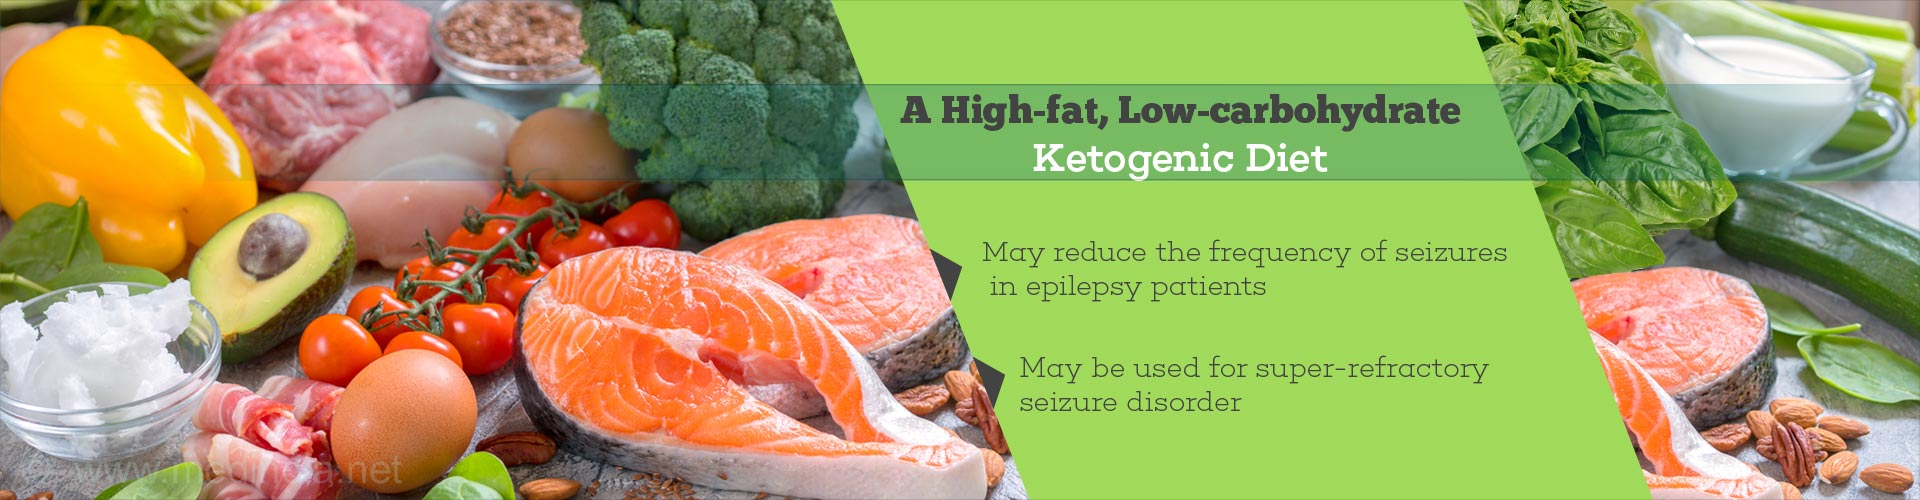 Ketogenic Diet May Reduce Frequency of Seizures in Severe Epilepsy